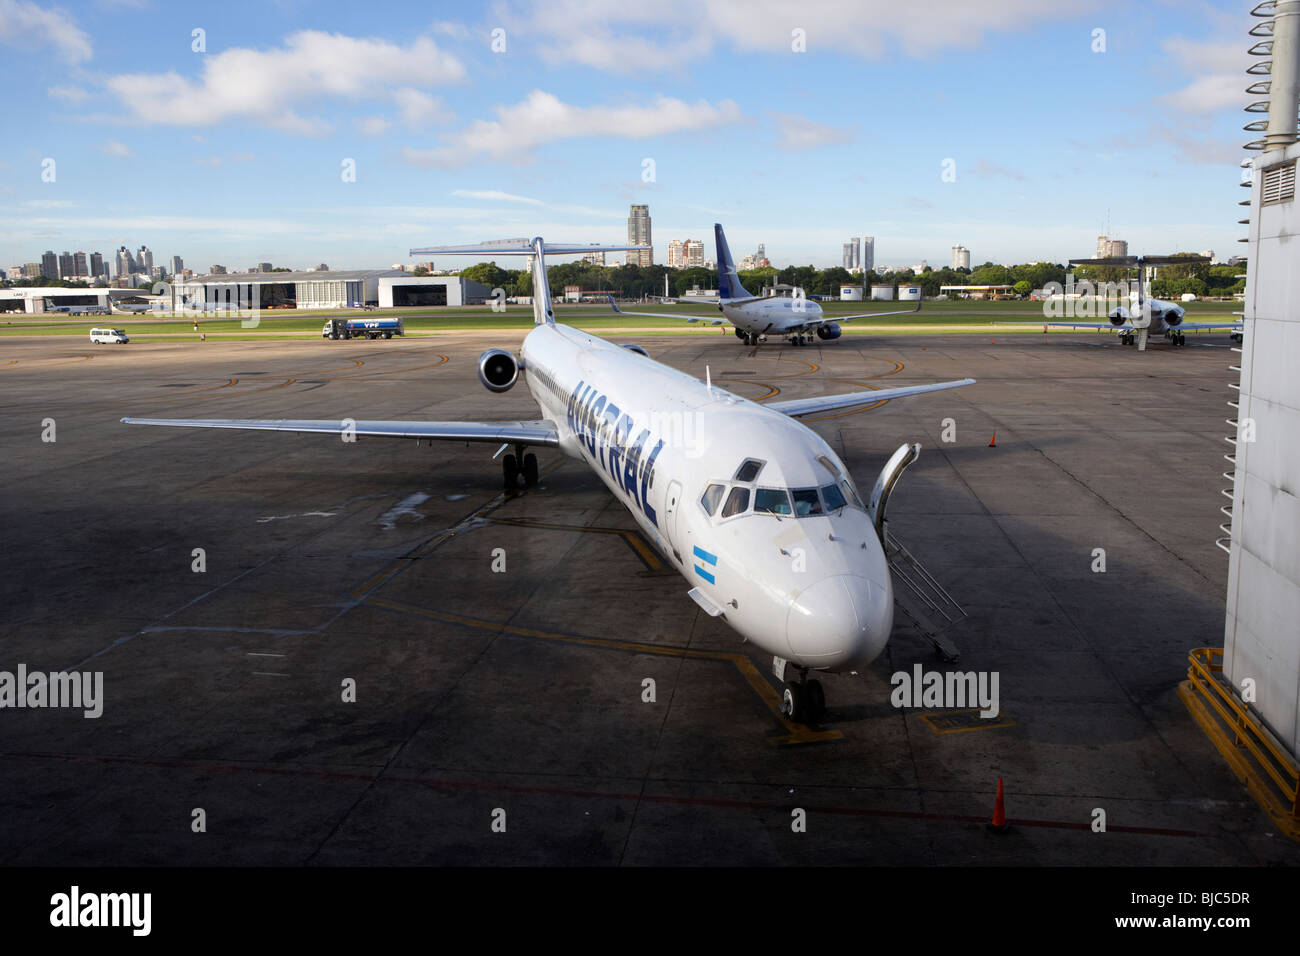 austral lineas areas McDonnell Douglas MD-81 LV-WFN aircraft on stand at aeroparque jorge newbery aep airport buenos - Stock Image